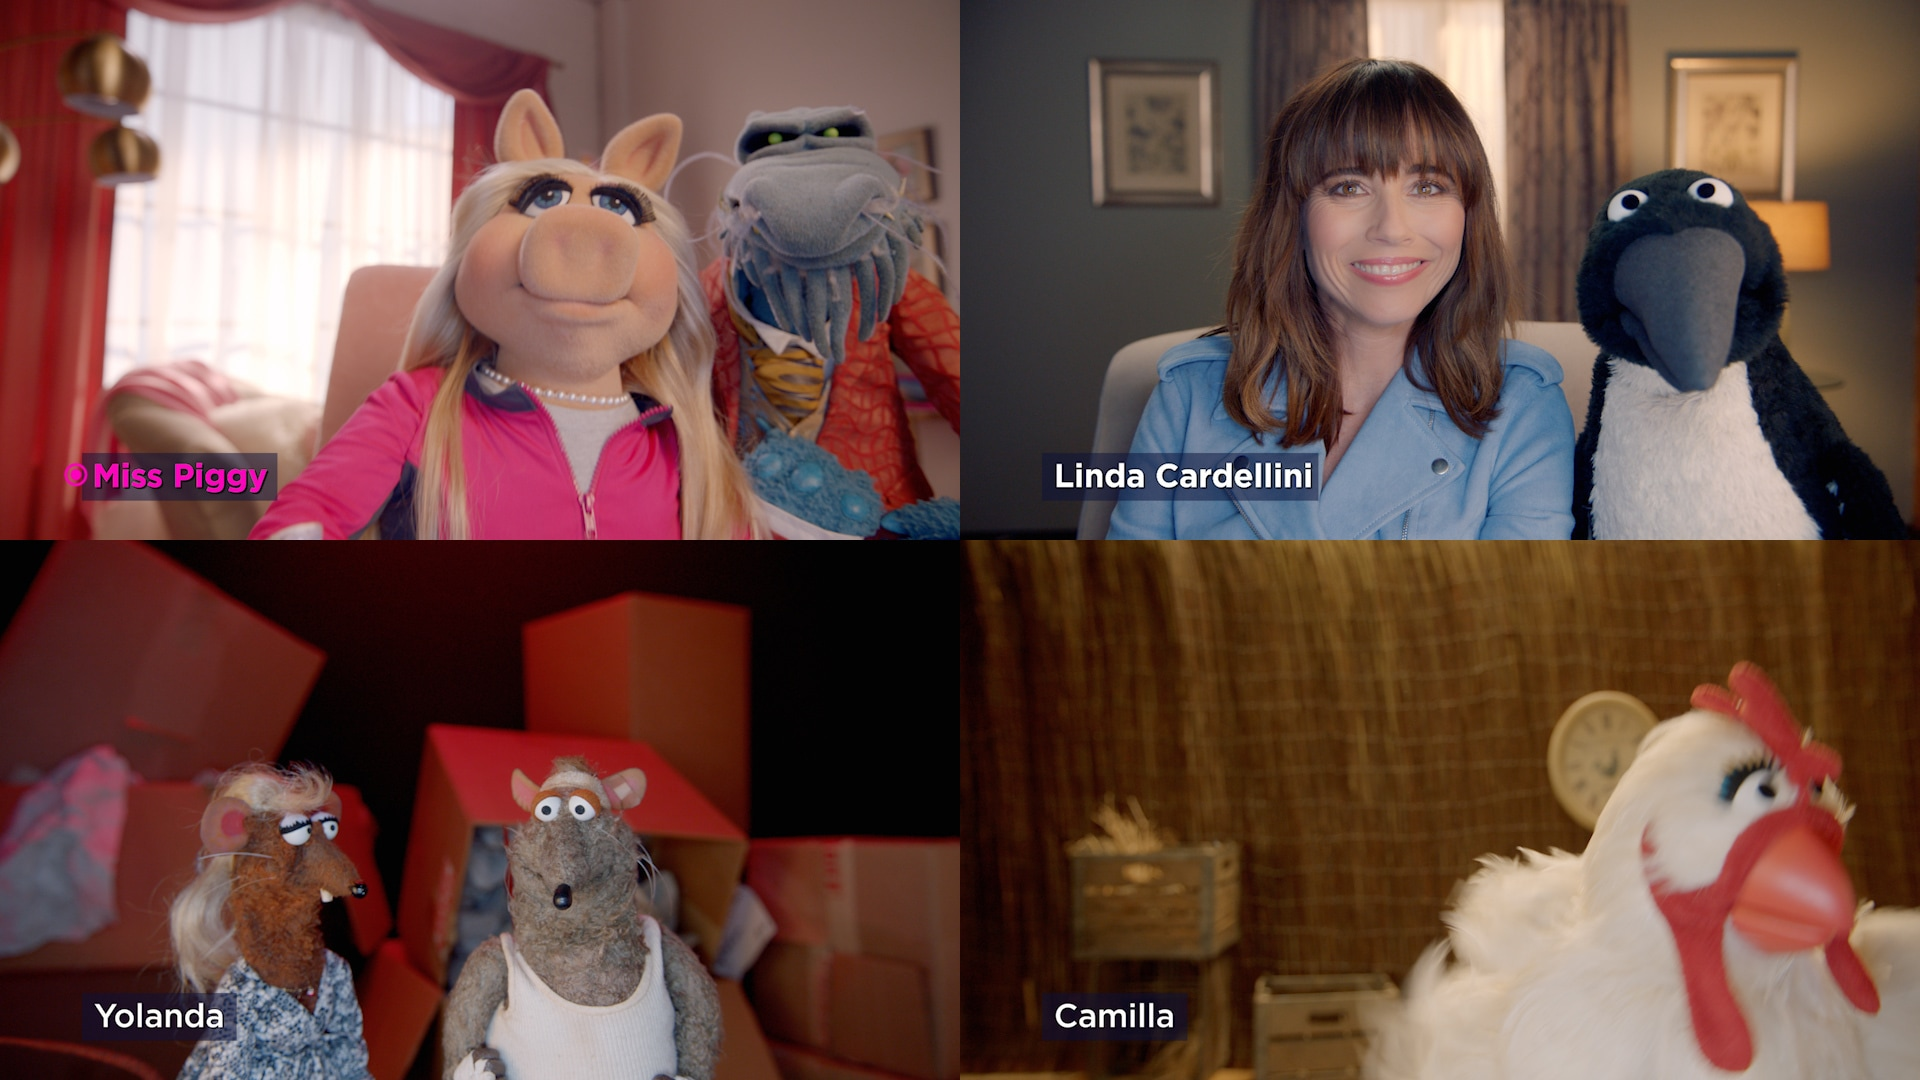 """Miss Piggy and Linda Cardellini in """"Muppets Now,"""" streaming only on Disney+"""